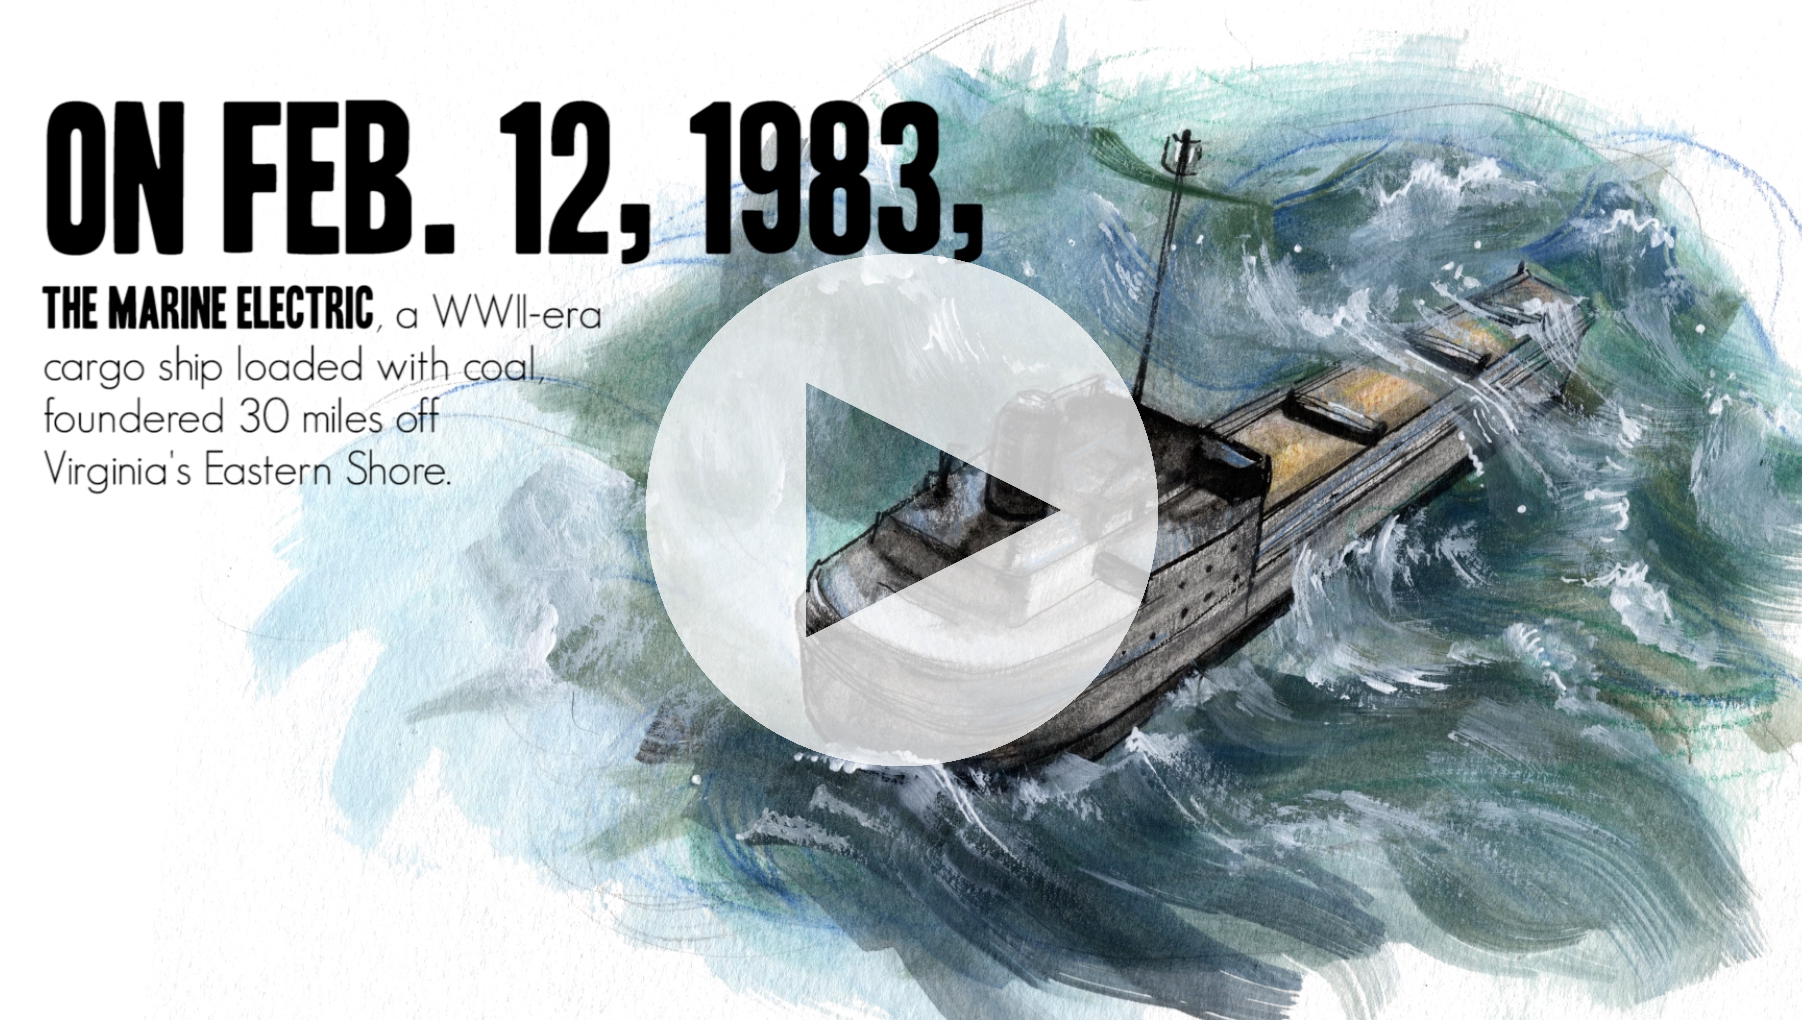 Multimedia Release: The shipwreck that changed the Coast